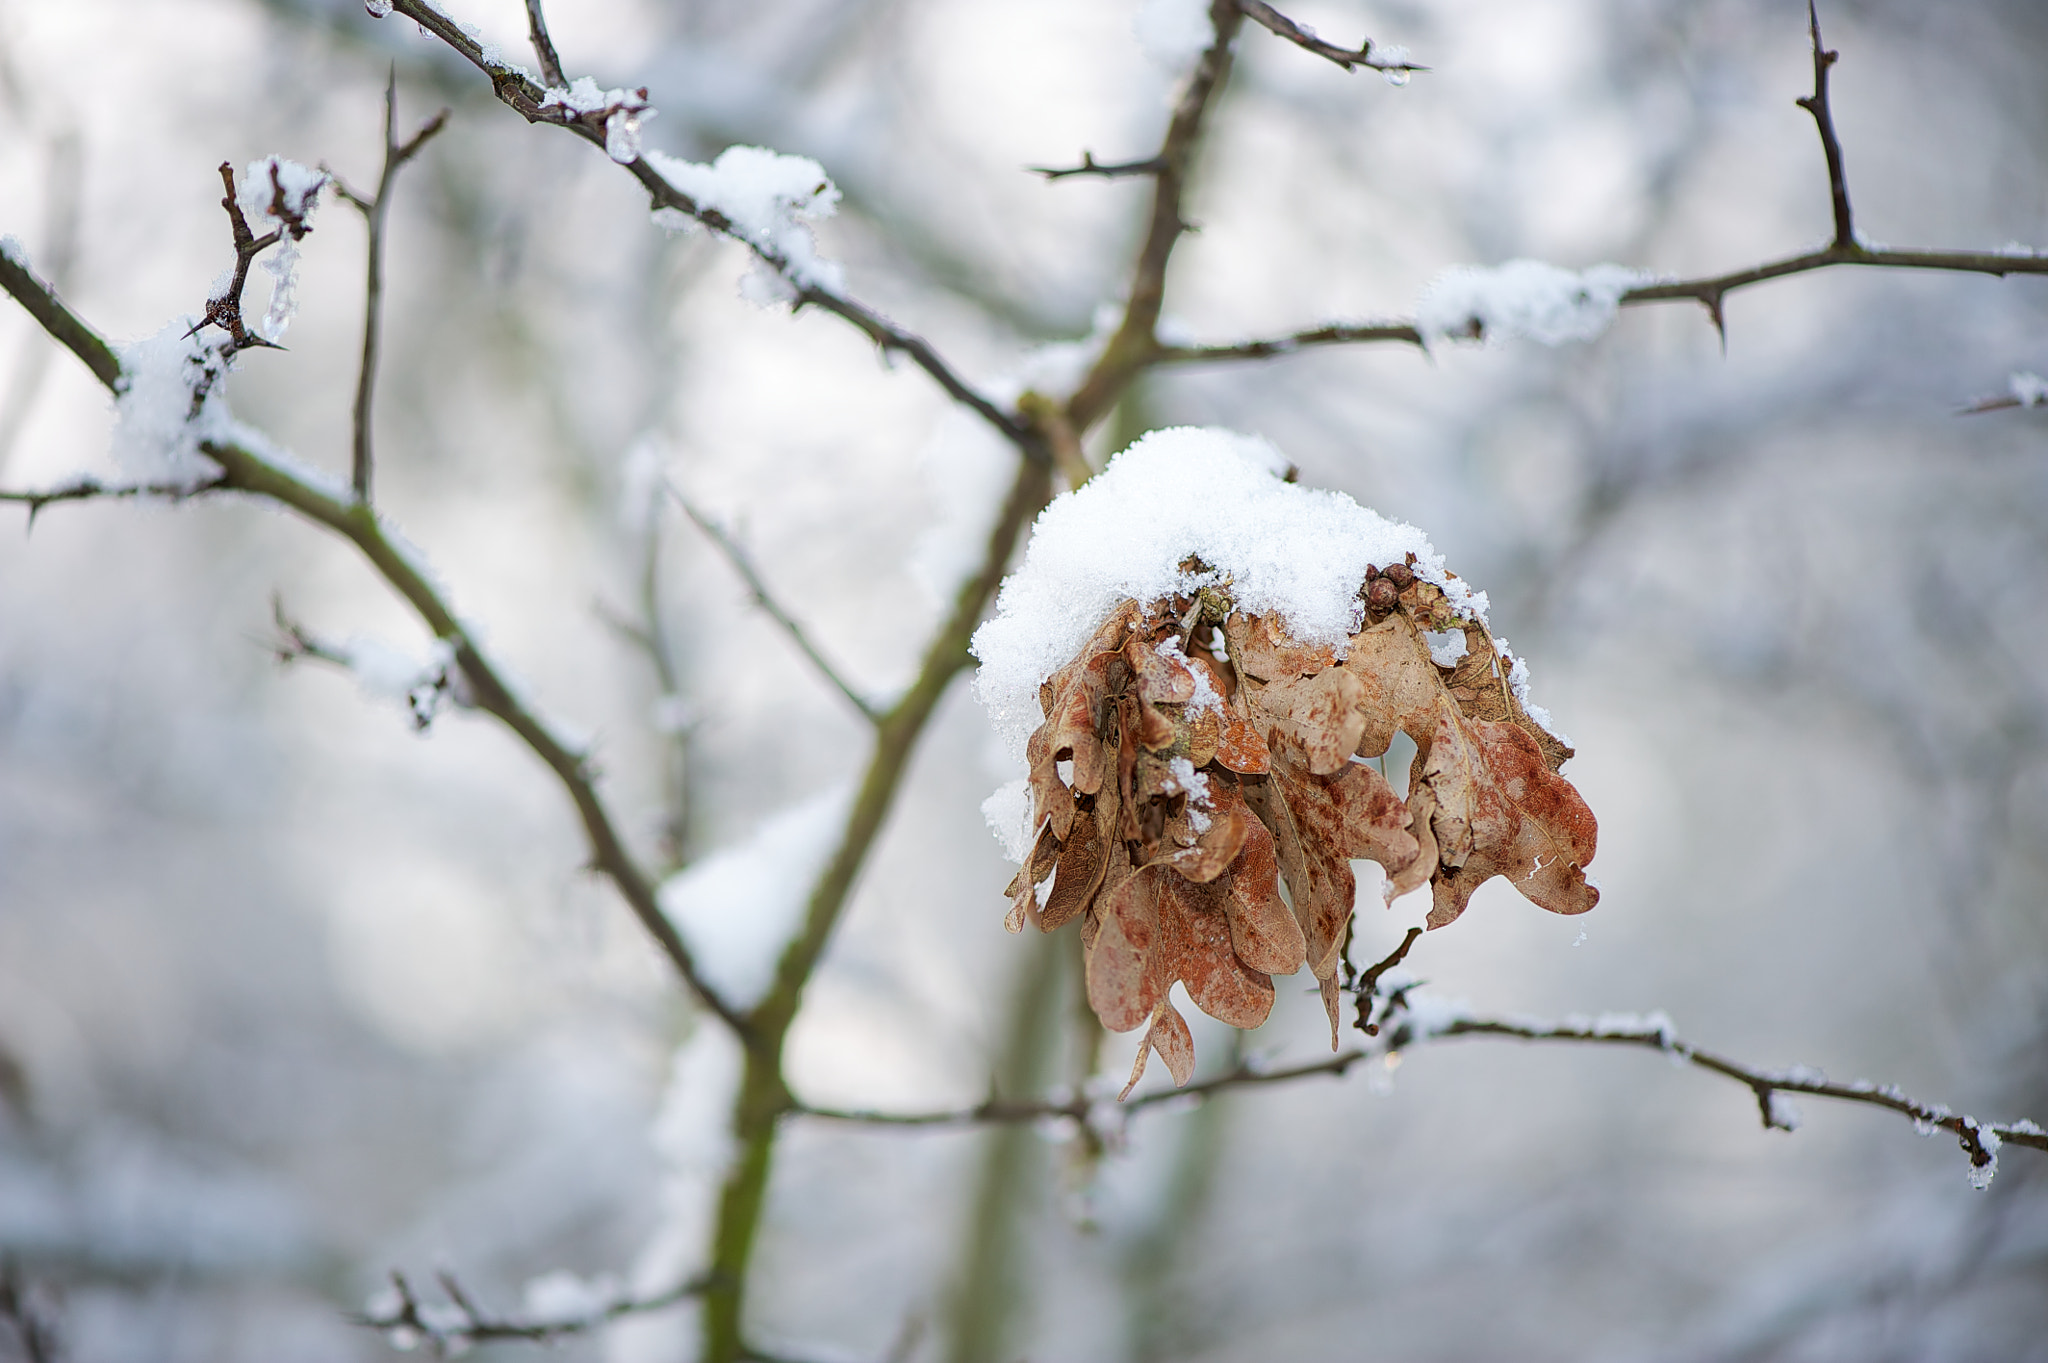 Photograph Snow covered leaves by James Johnson on 500px